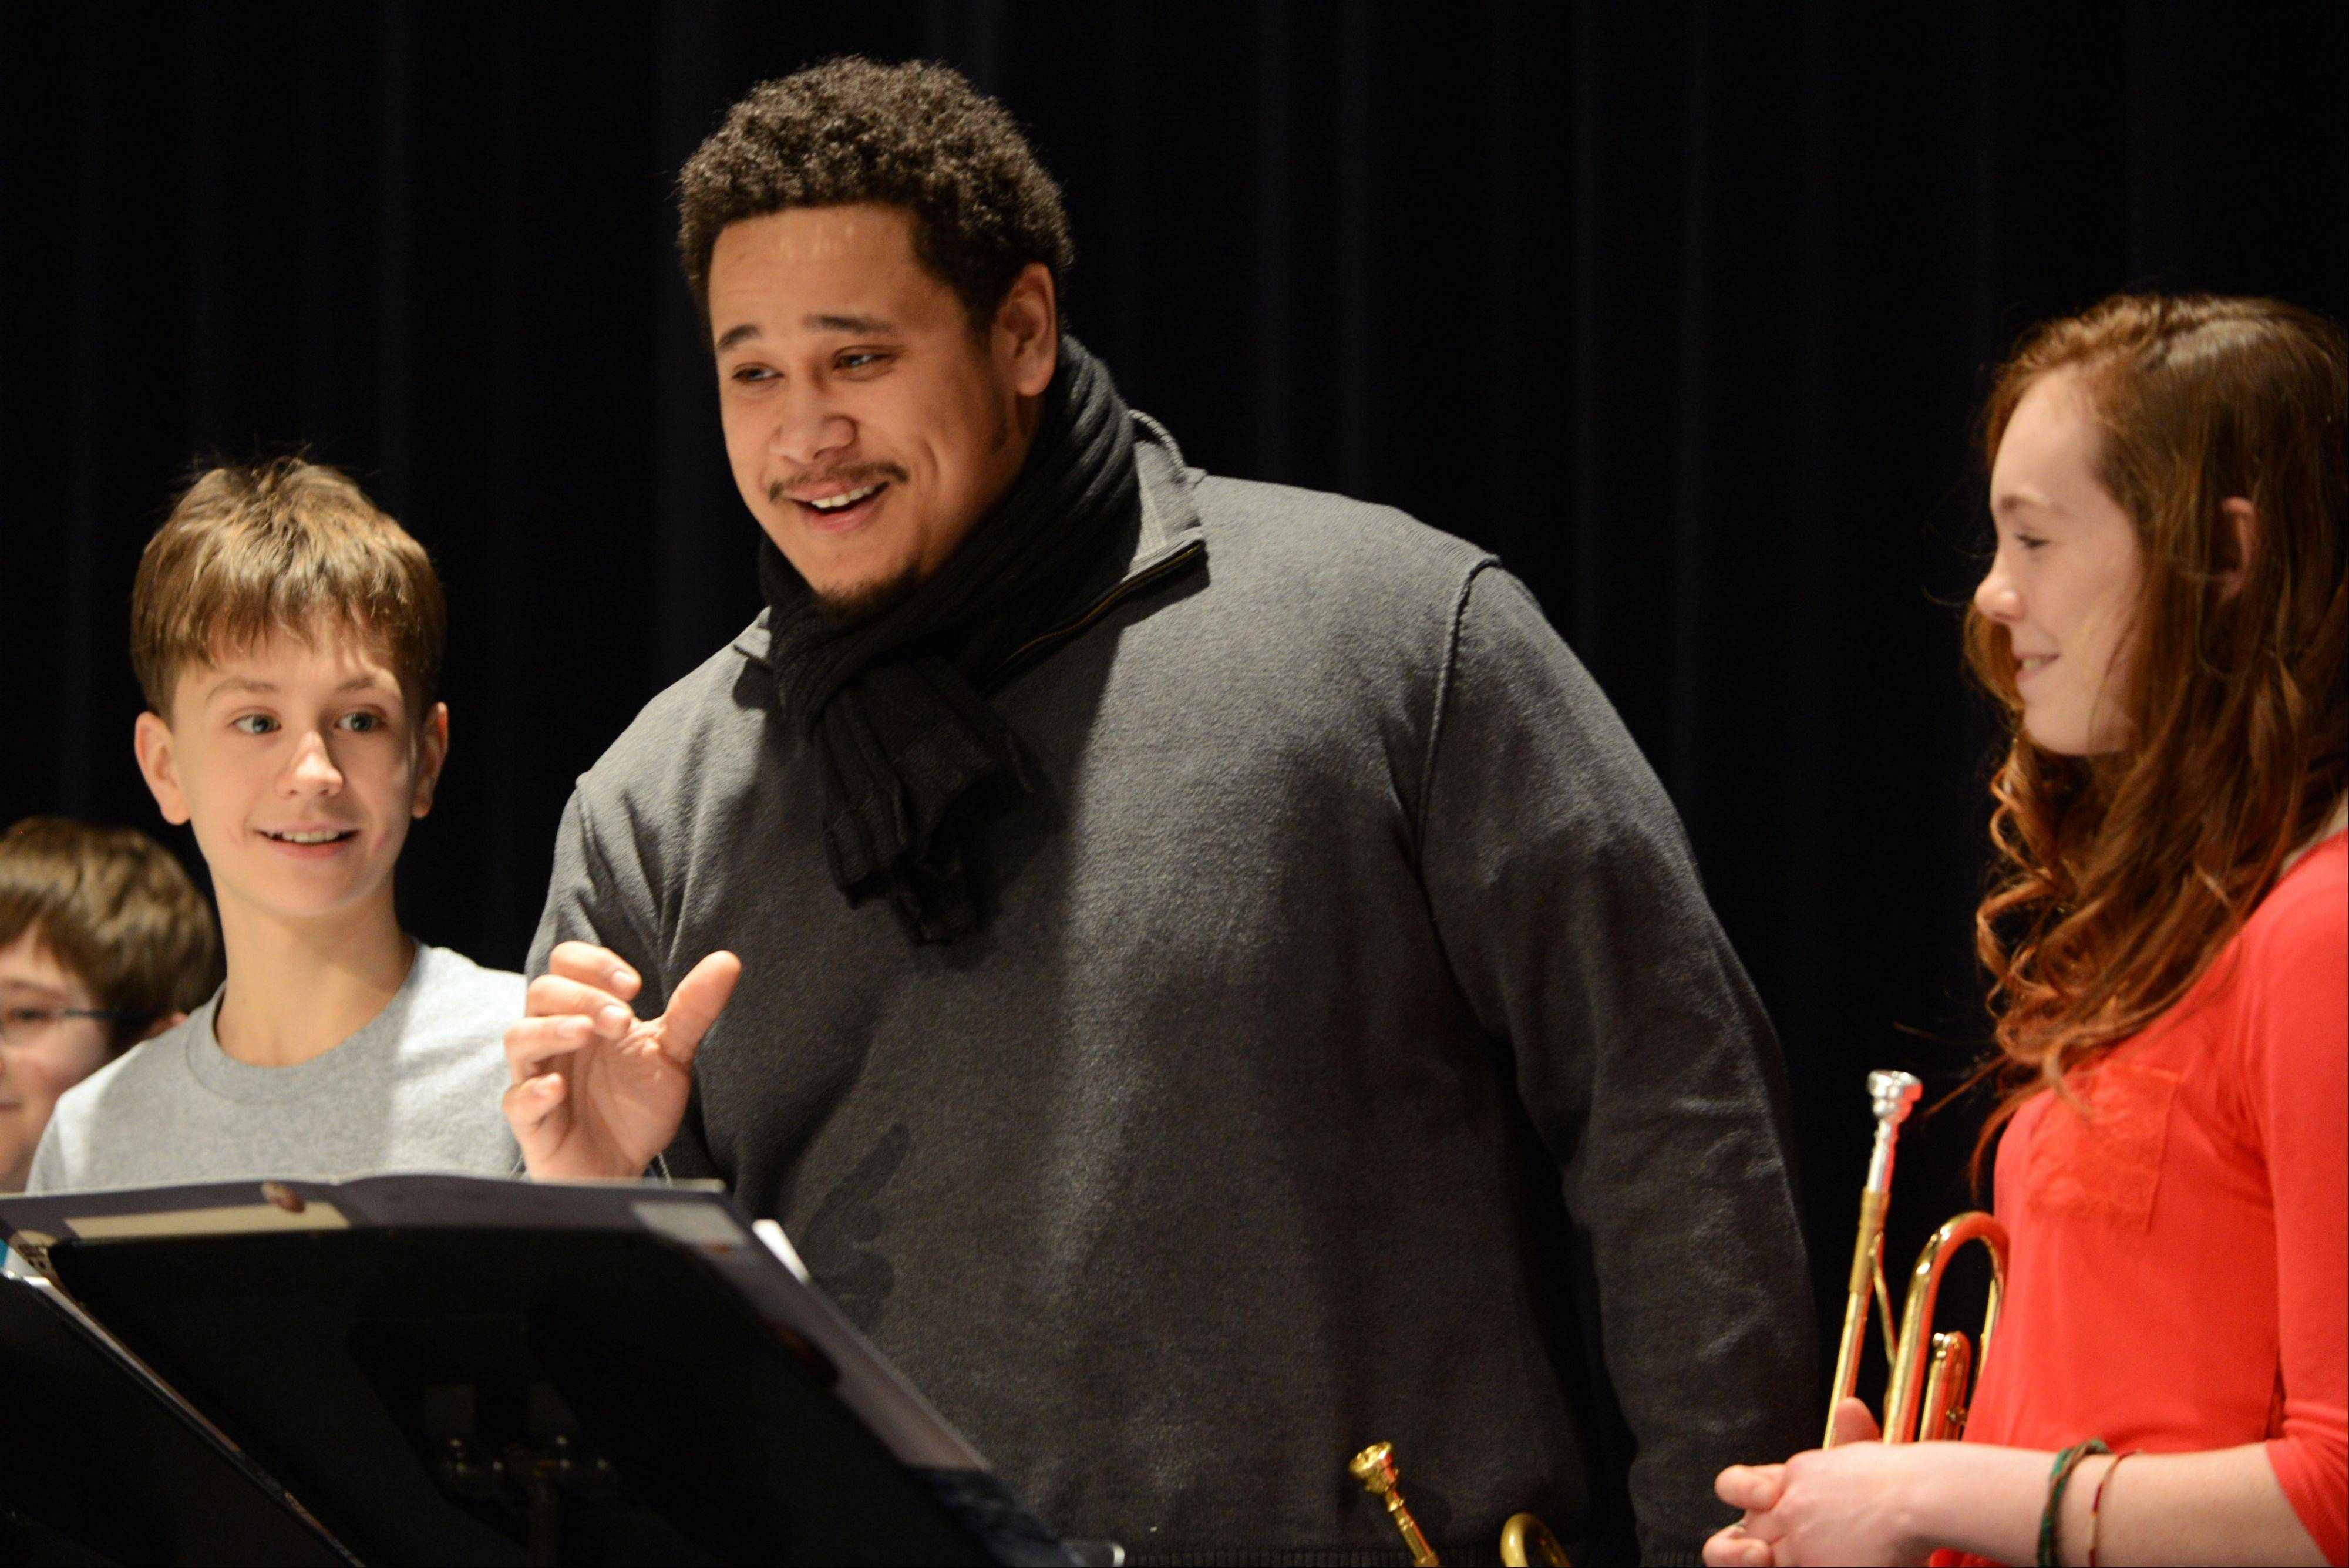 Professional Chicago musician Marques Carroll works with Highland Middle School Jazz I students Ben Johnson, left, and Annalisa Waddick during a Jazz Festival clinic Tuesday at Libertyville High School.